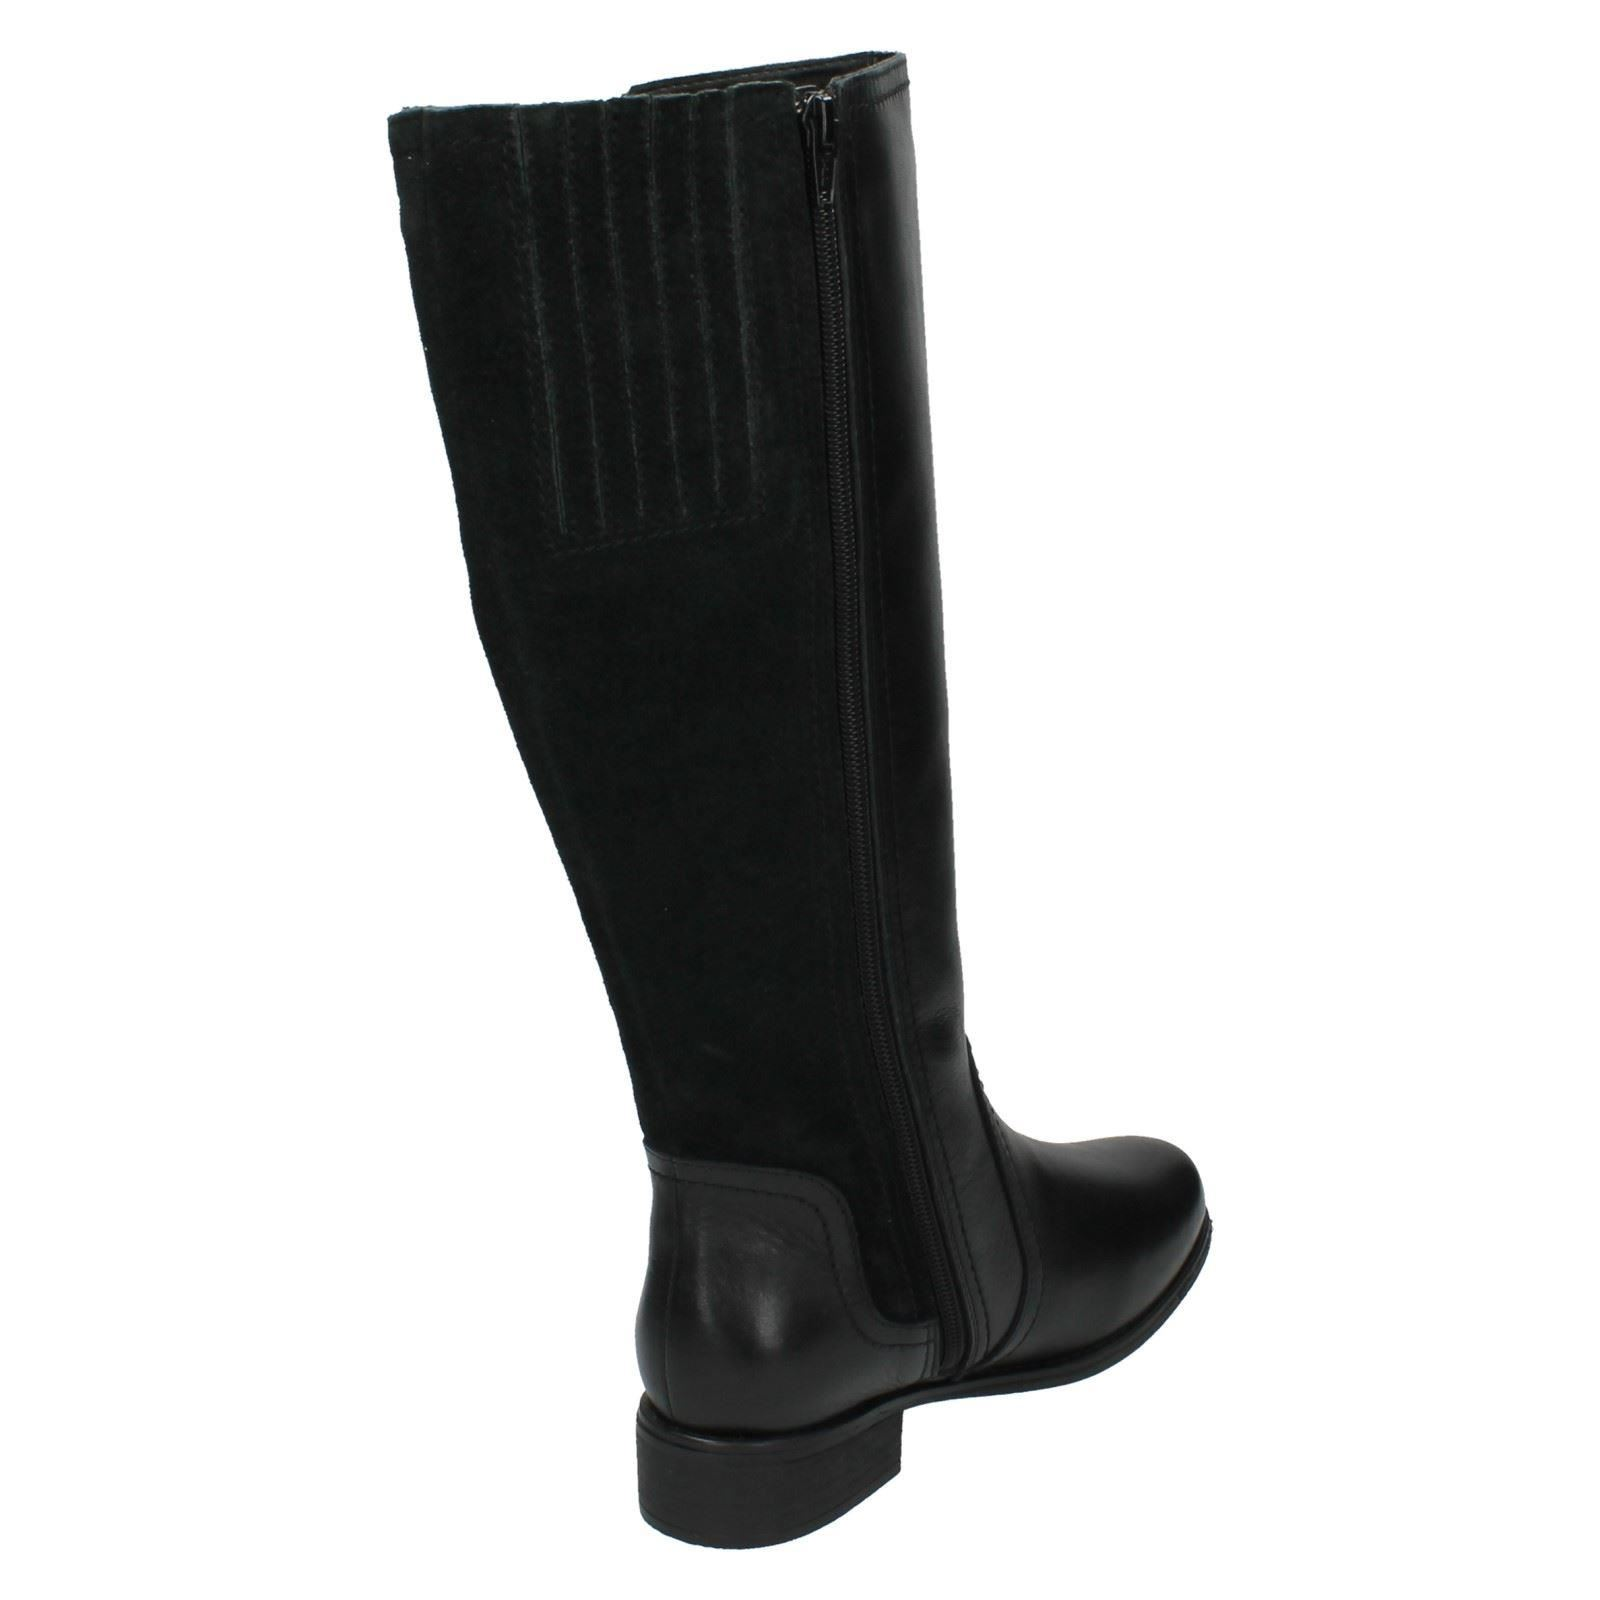 Grandes zapatos con descuento Padders Ladies Wide Fitting Mid Calf Length Long Boots - Myra